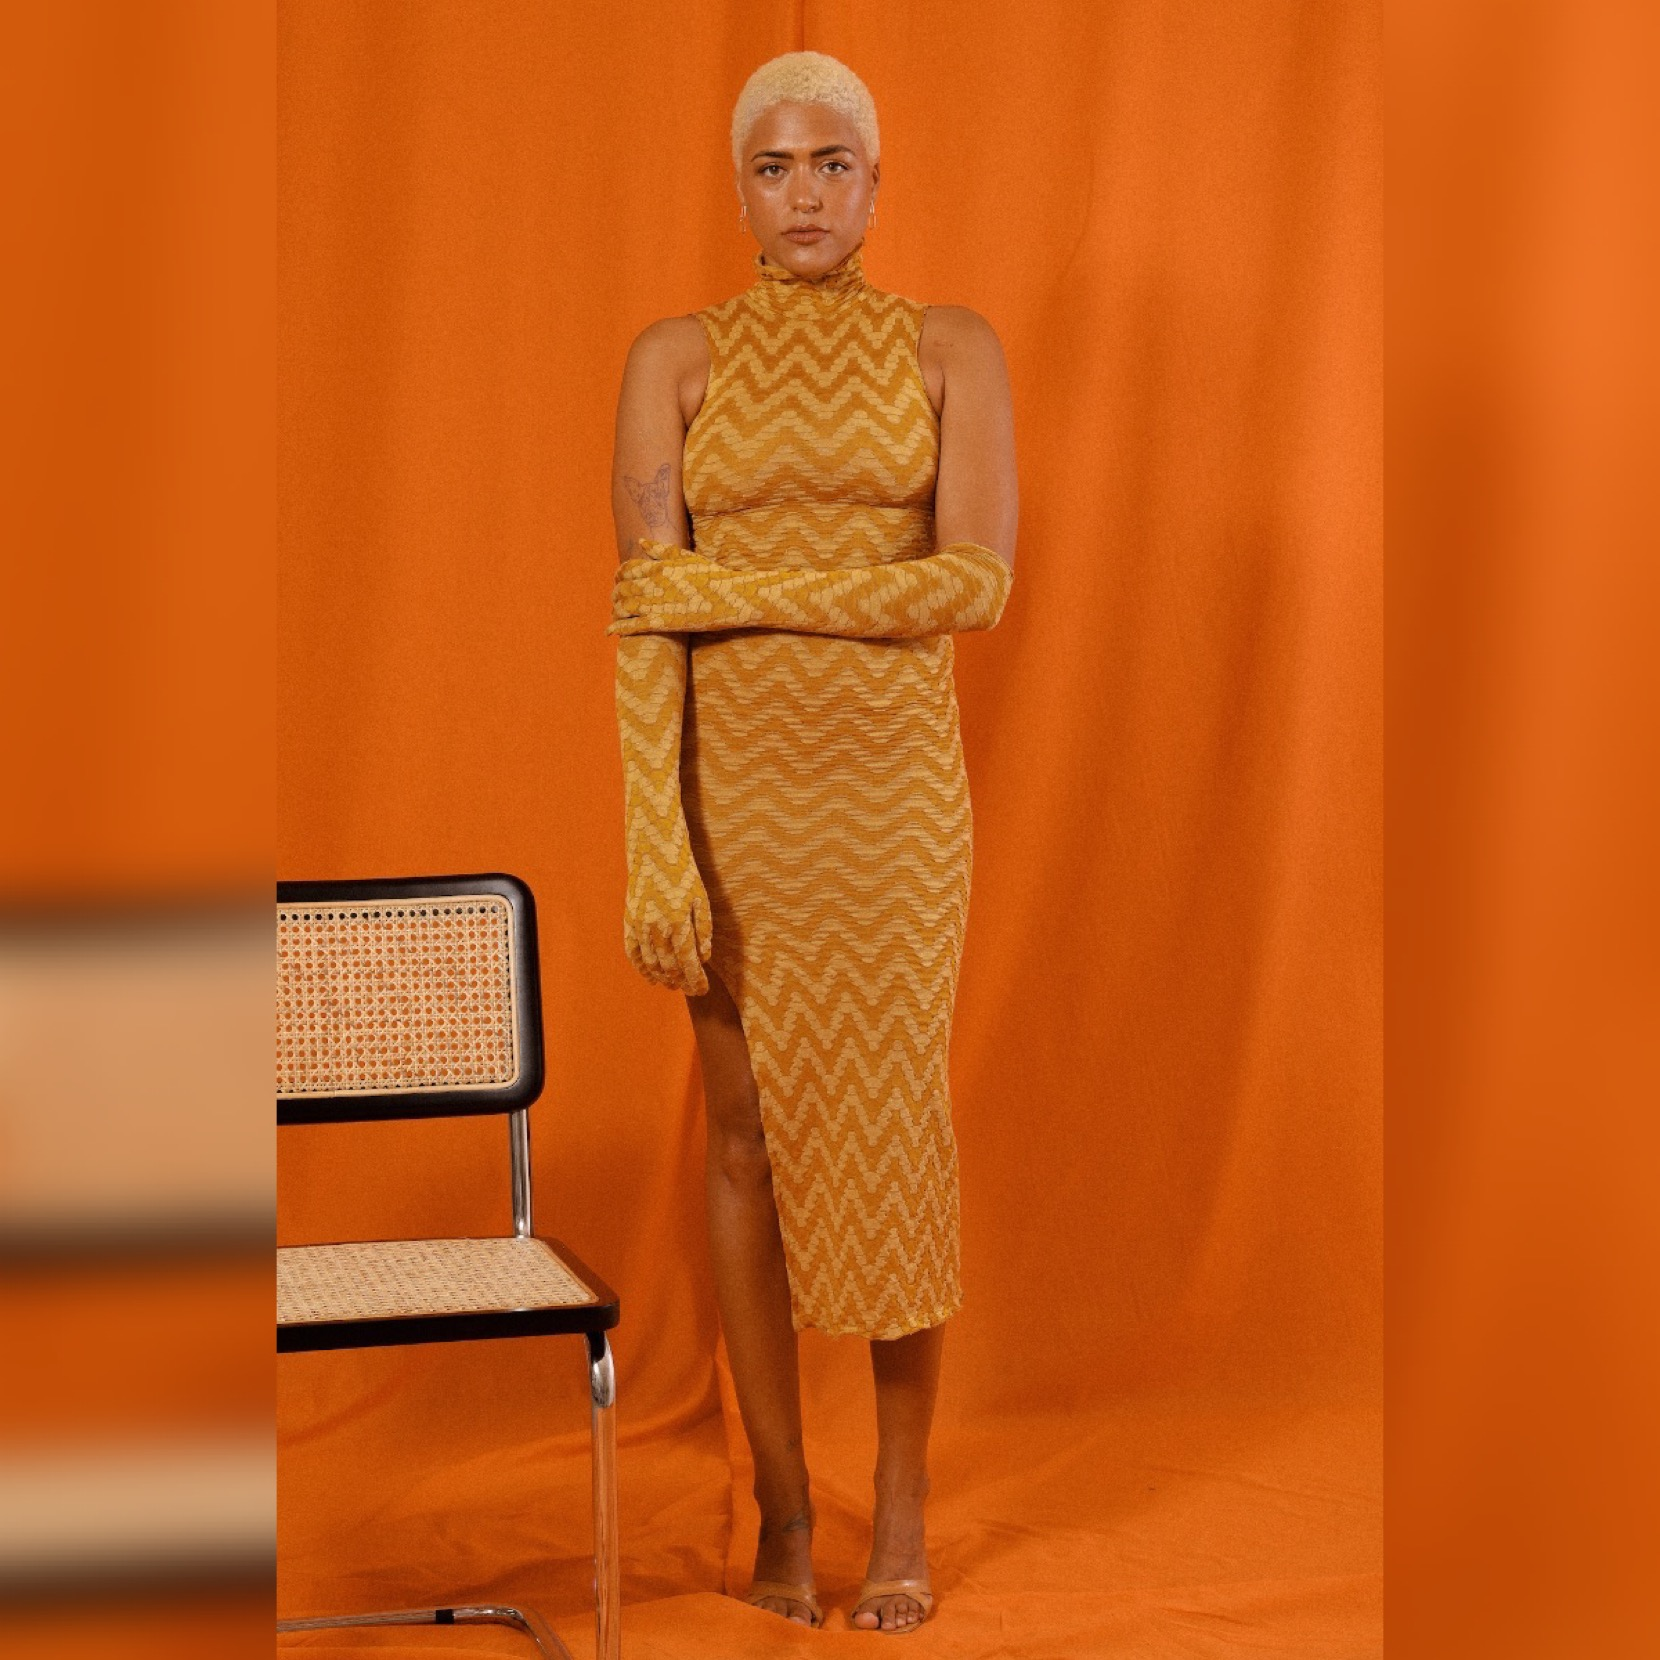 DALMA TURTLENECK TANK DRESS in GOLDENROD CHEVRON KNIT by Saint Mojavi for use by 360 Magazine